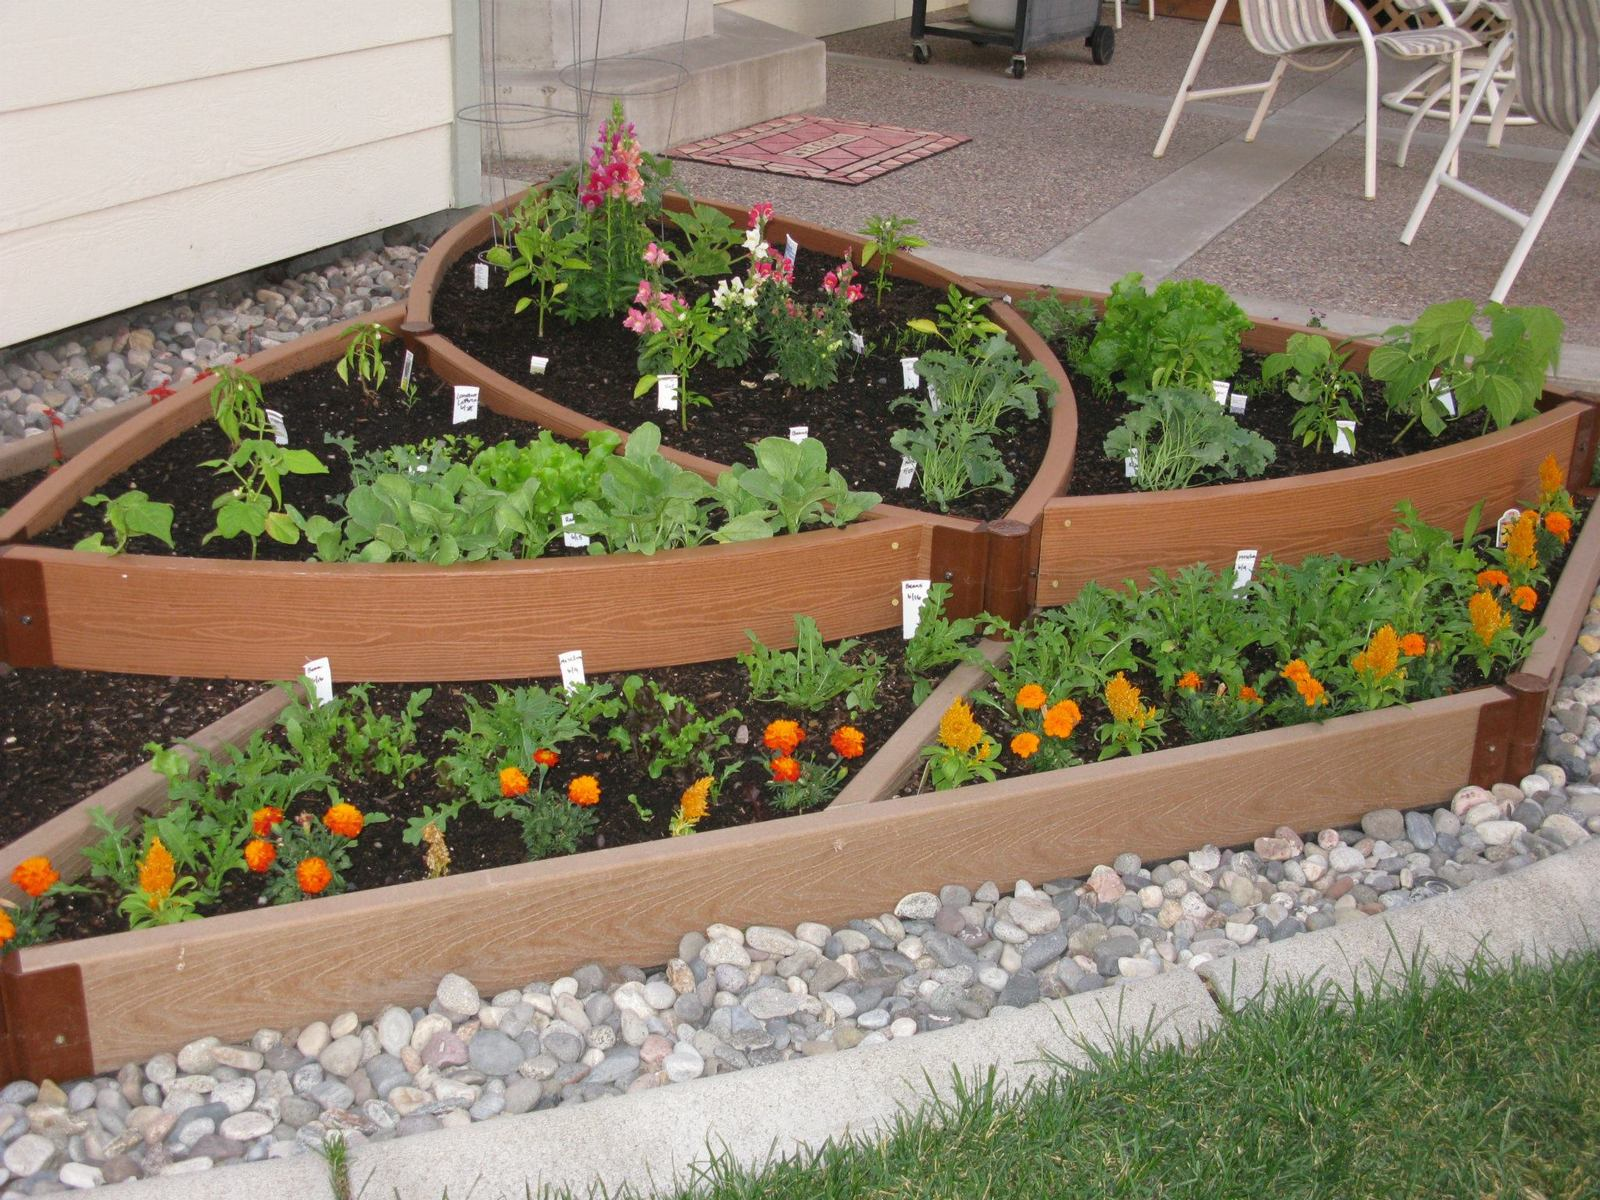 Creative Design For Raised Garden Bed Ideas